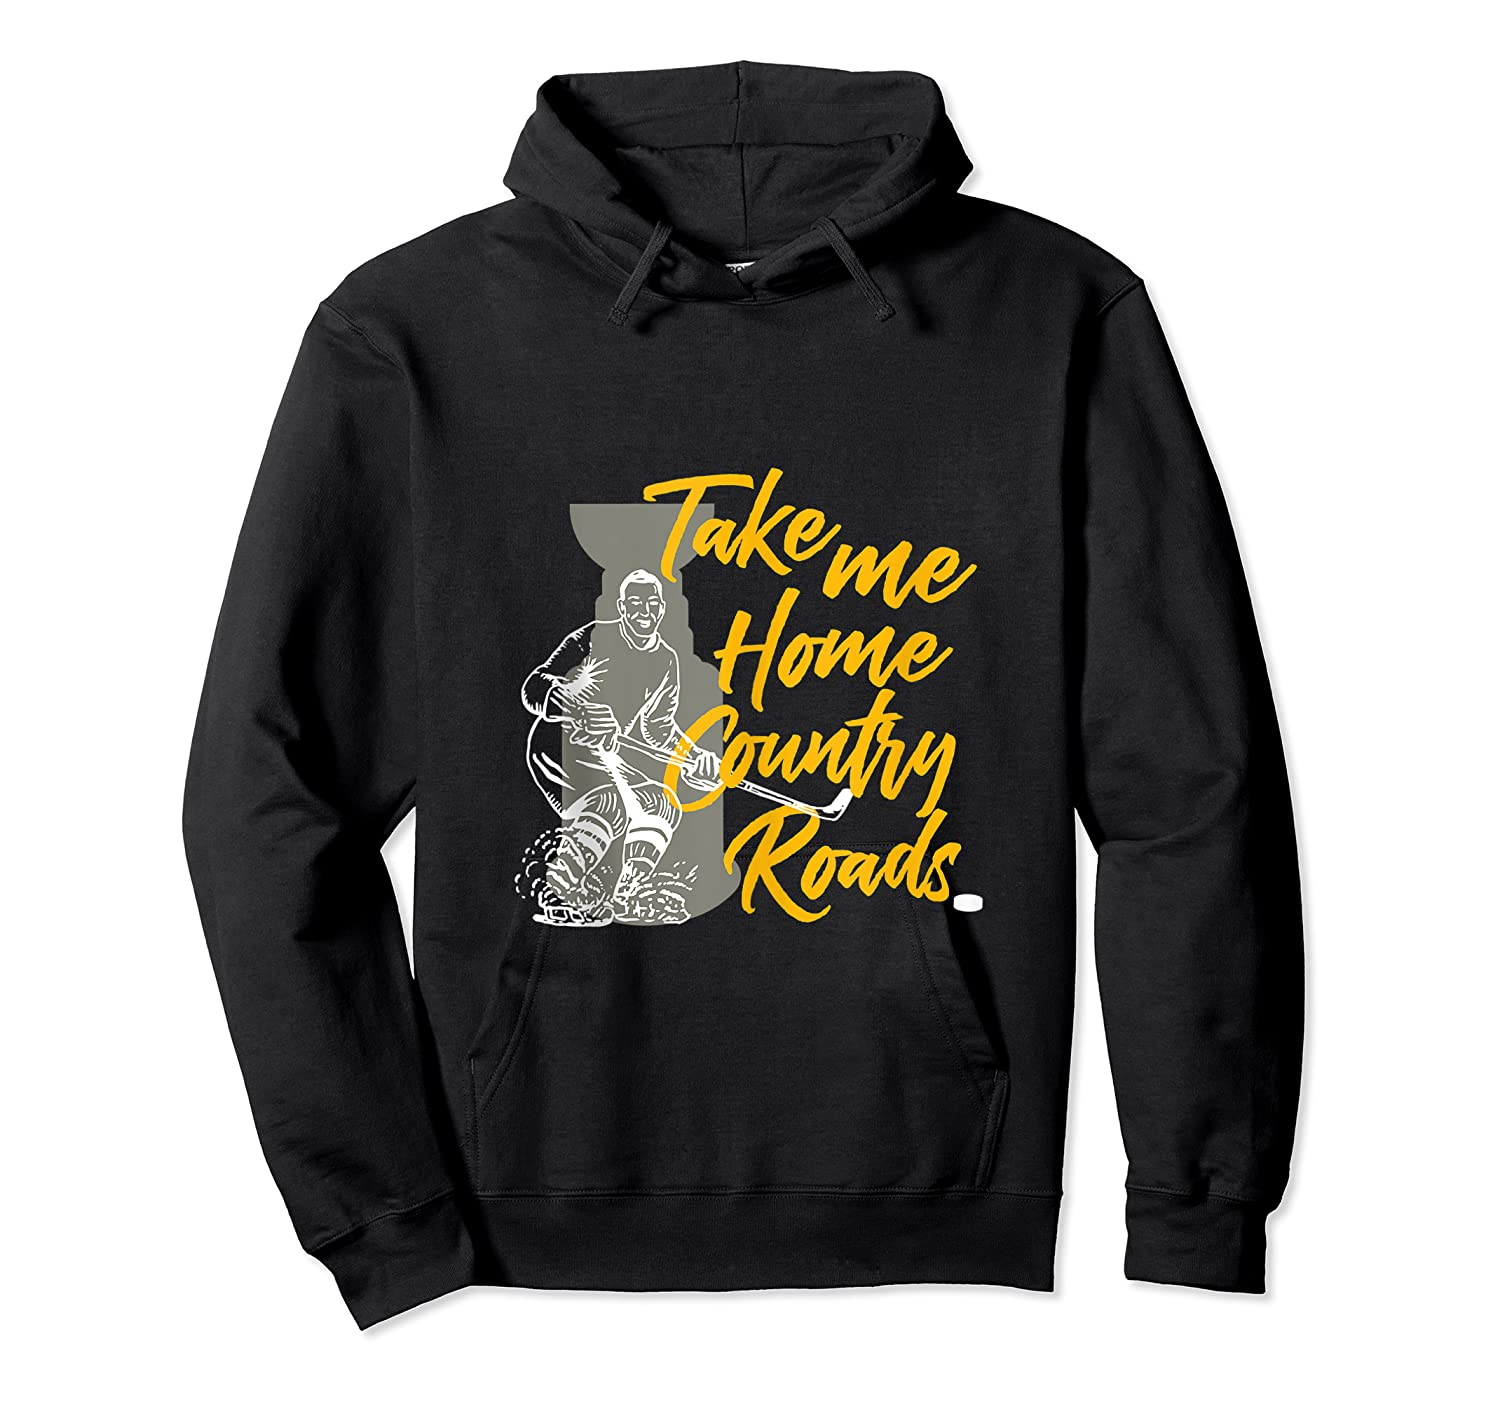 Roads To Hockey Country Fan Take Me Home Top Gift Tank Top Shirts Unisex Pullover Hoodie